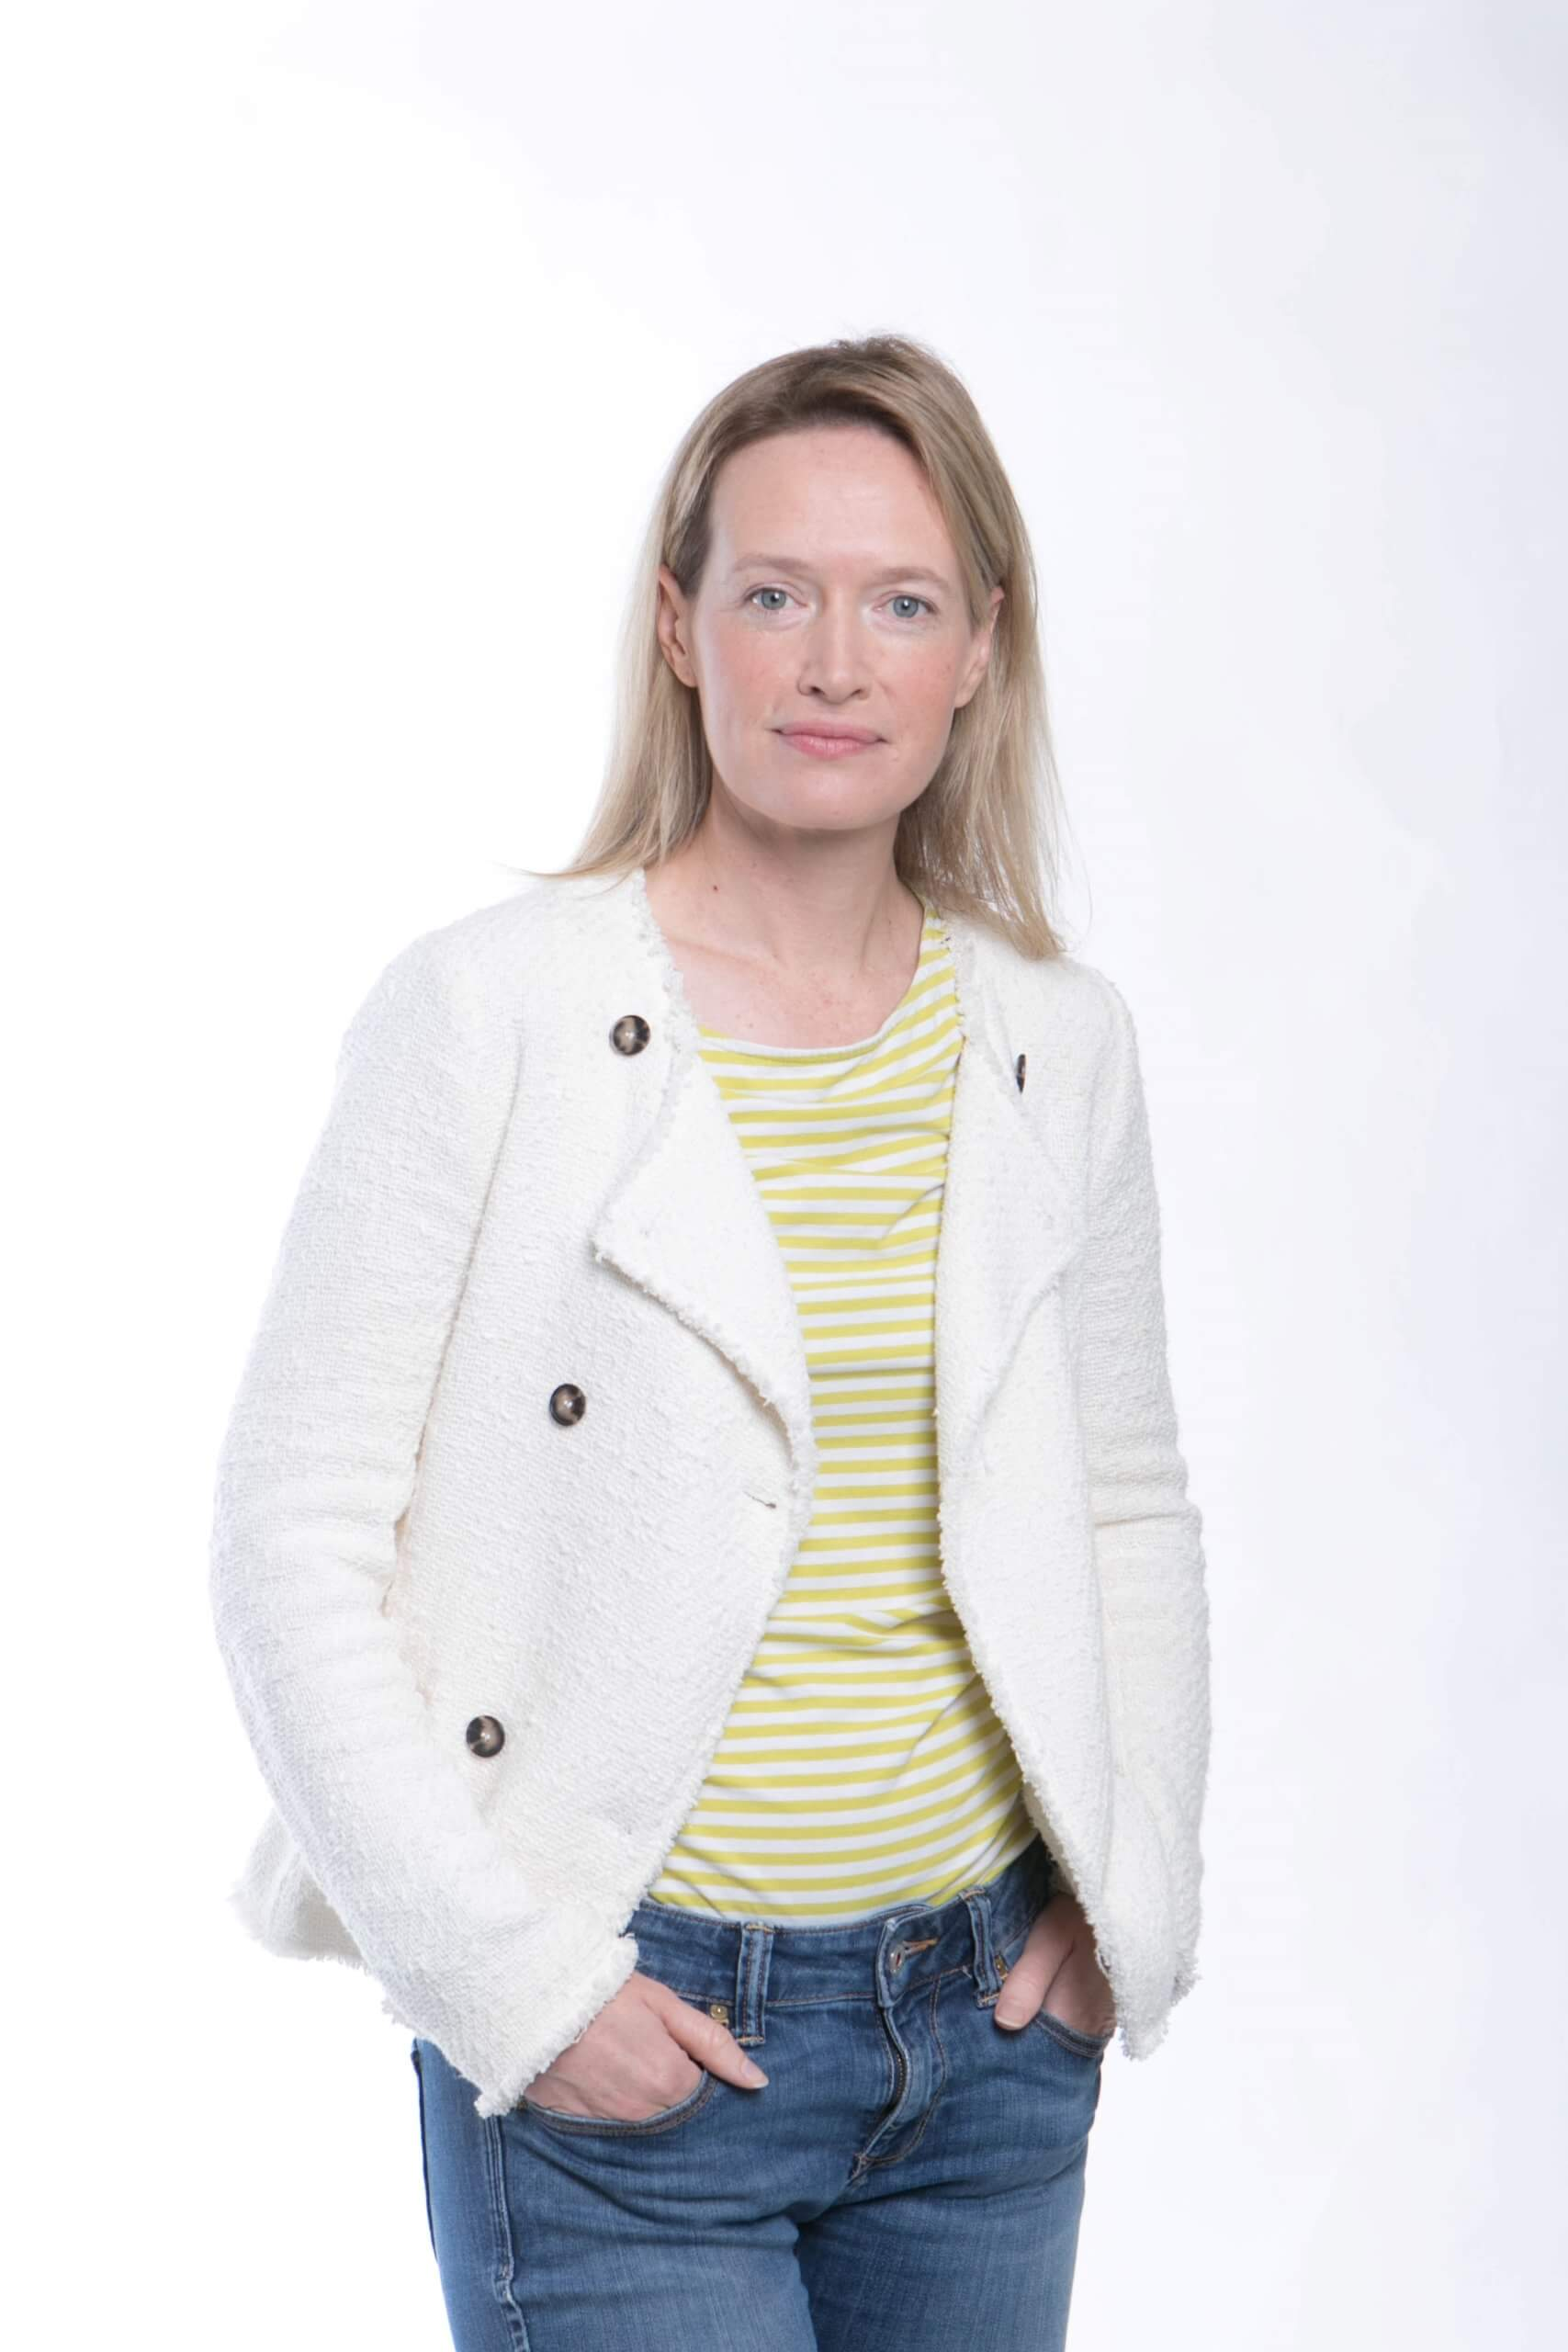 Vanessa Coffey looks at the camera, wearing a white jacket and yellow top, with hands in pockets of her jeans